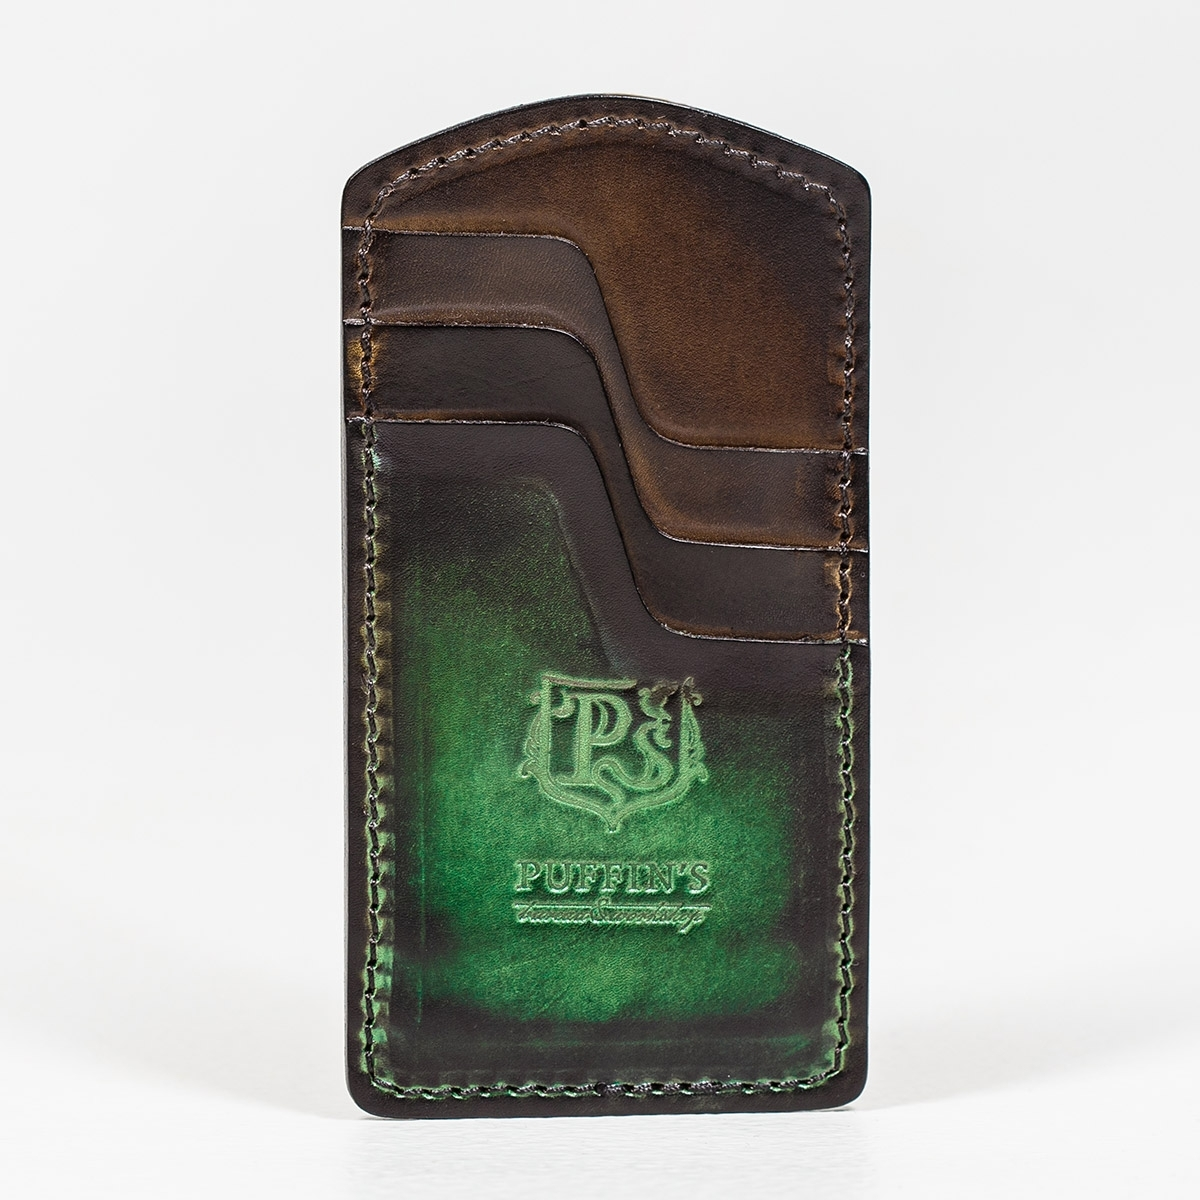 Cardholder TOWER grassy green & chestnut